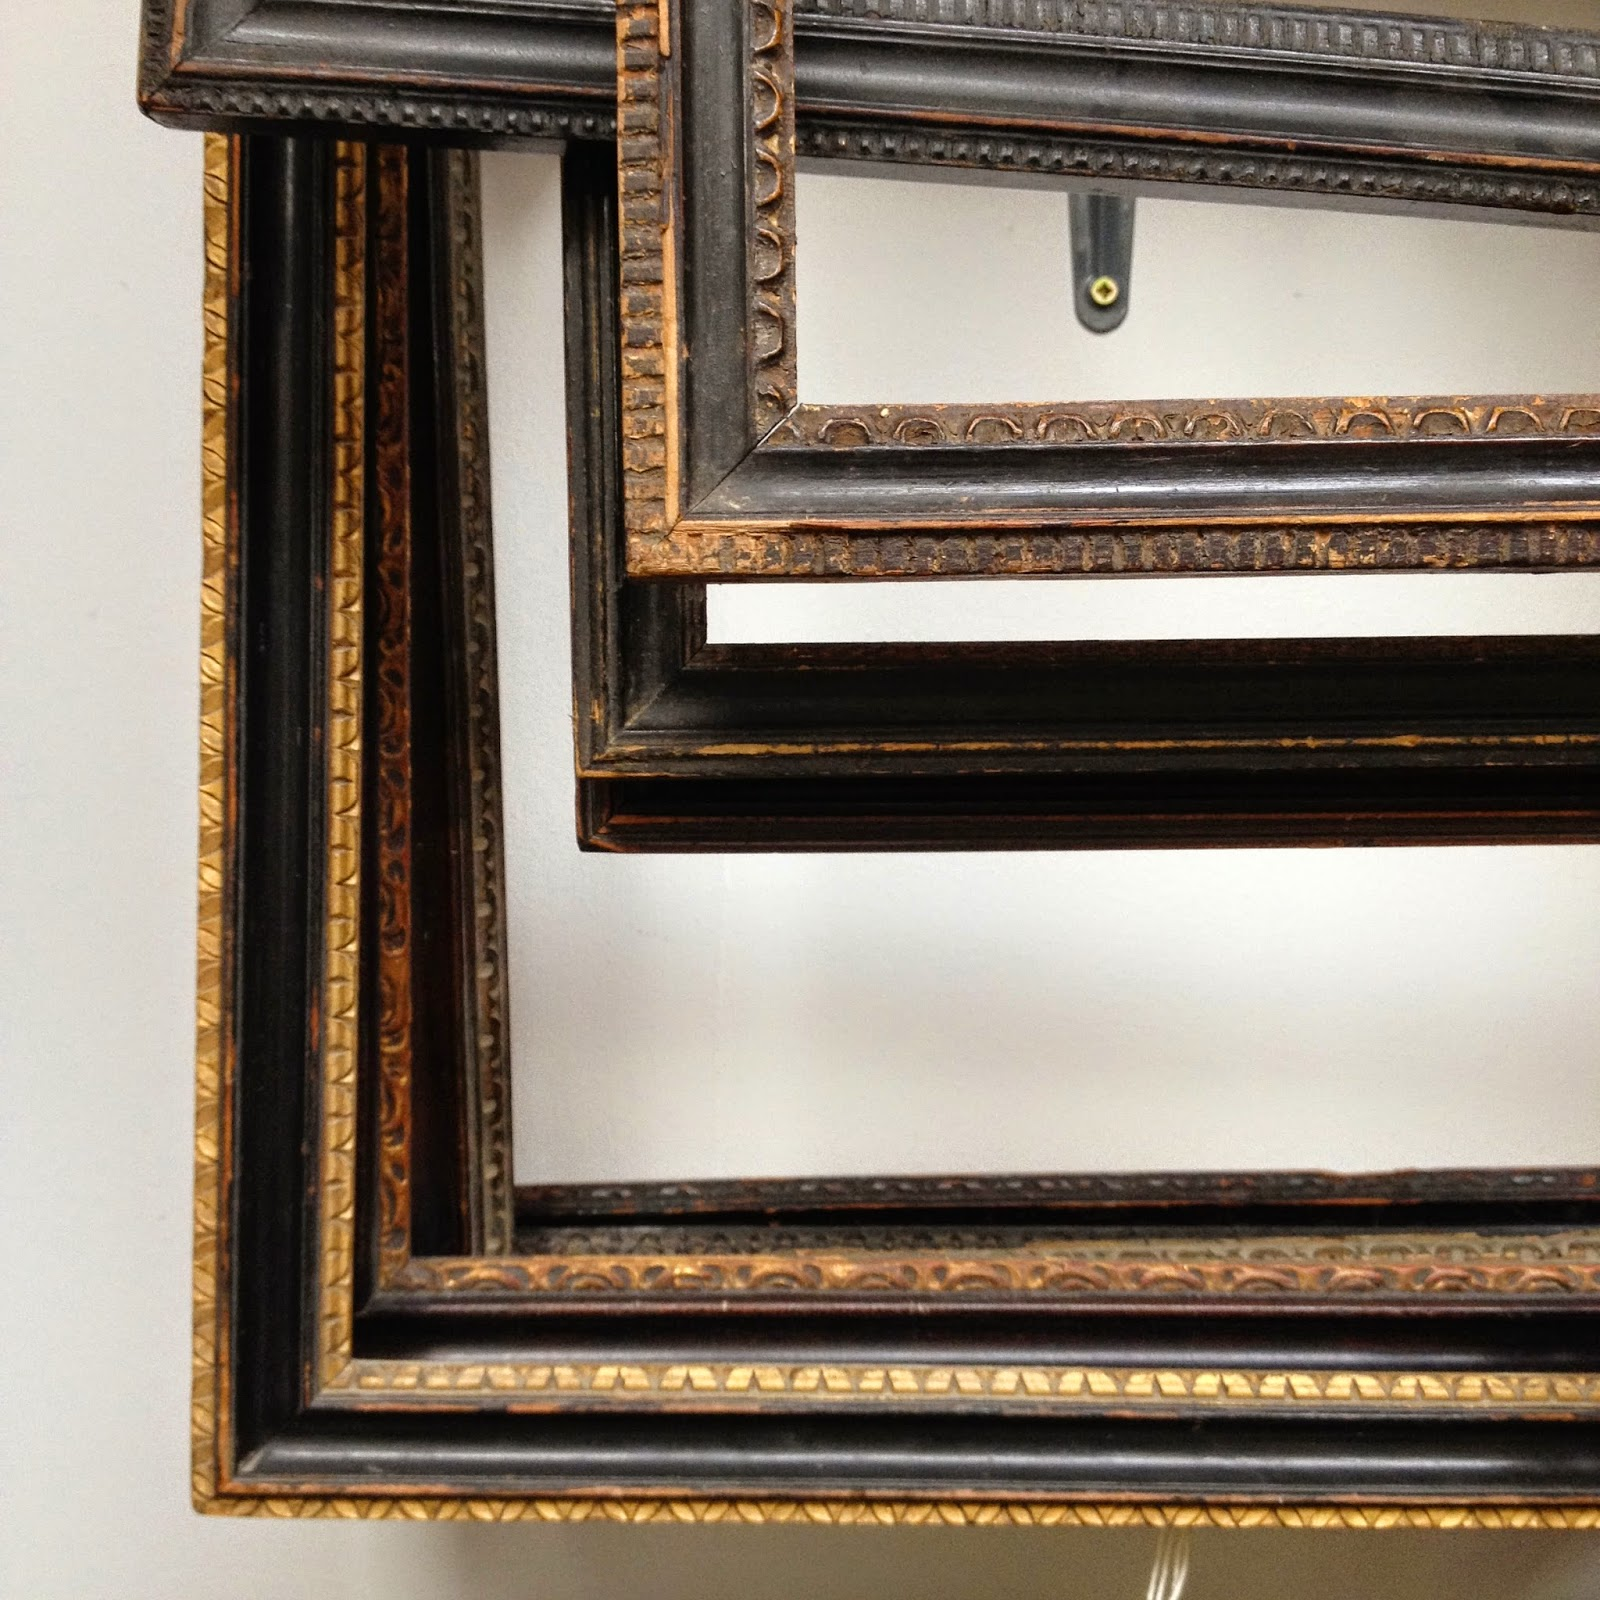 Framemaker: Carved Hogarth Style Frames